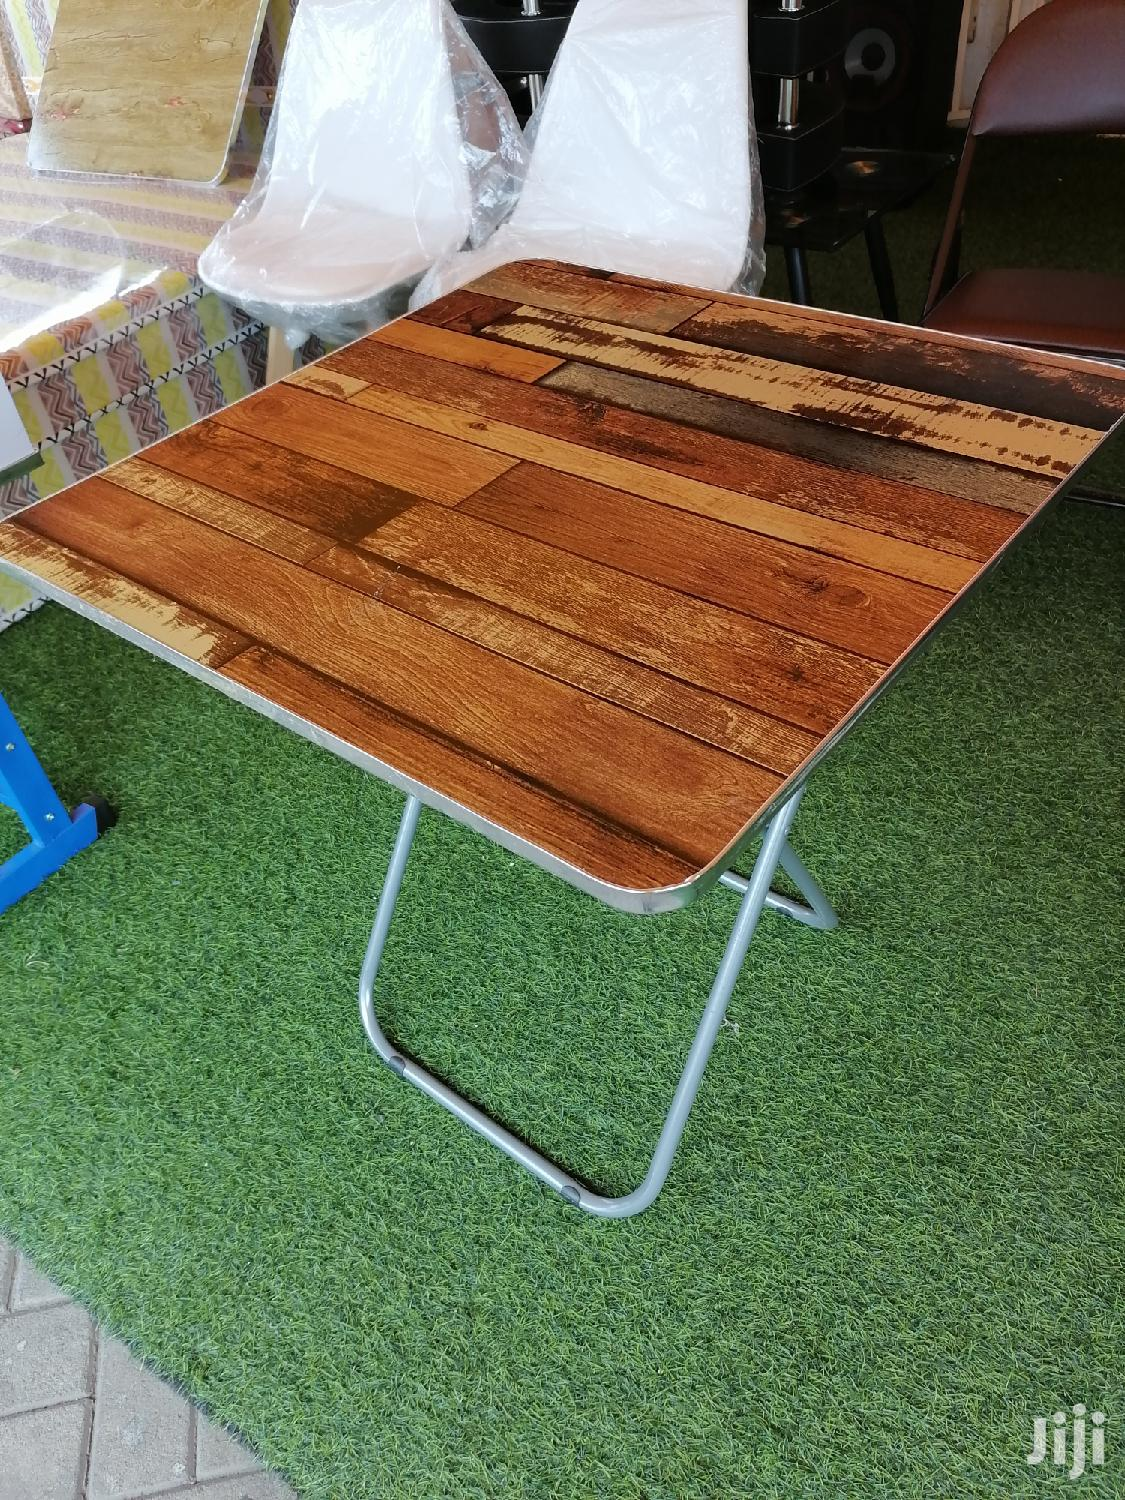 Foldable Table | Furniture for sale in Adabraka, Greater Accra, Ghana